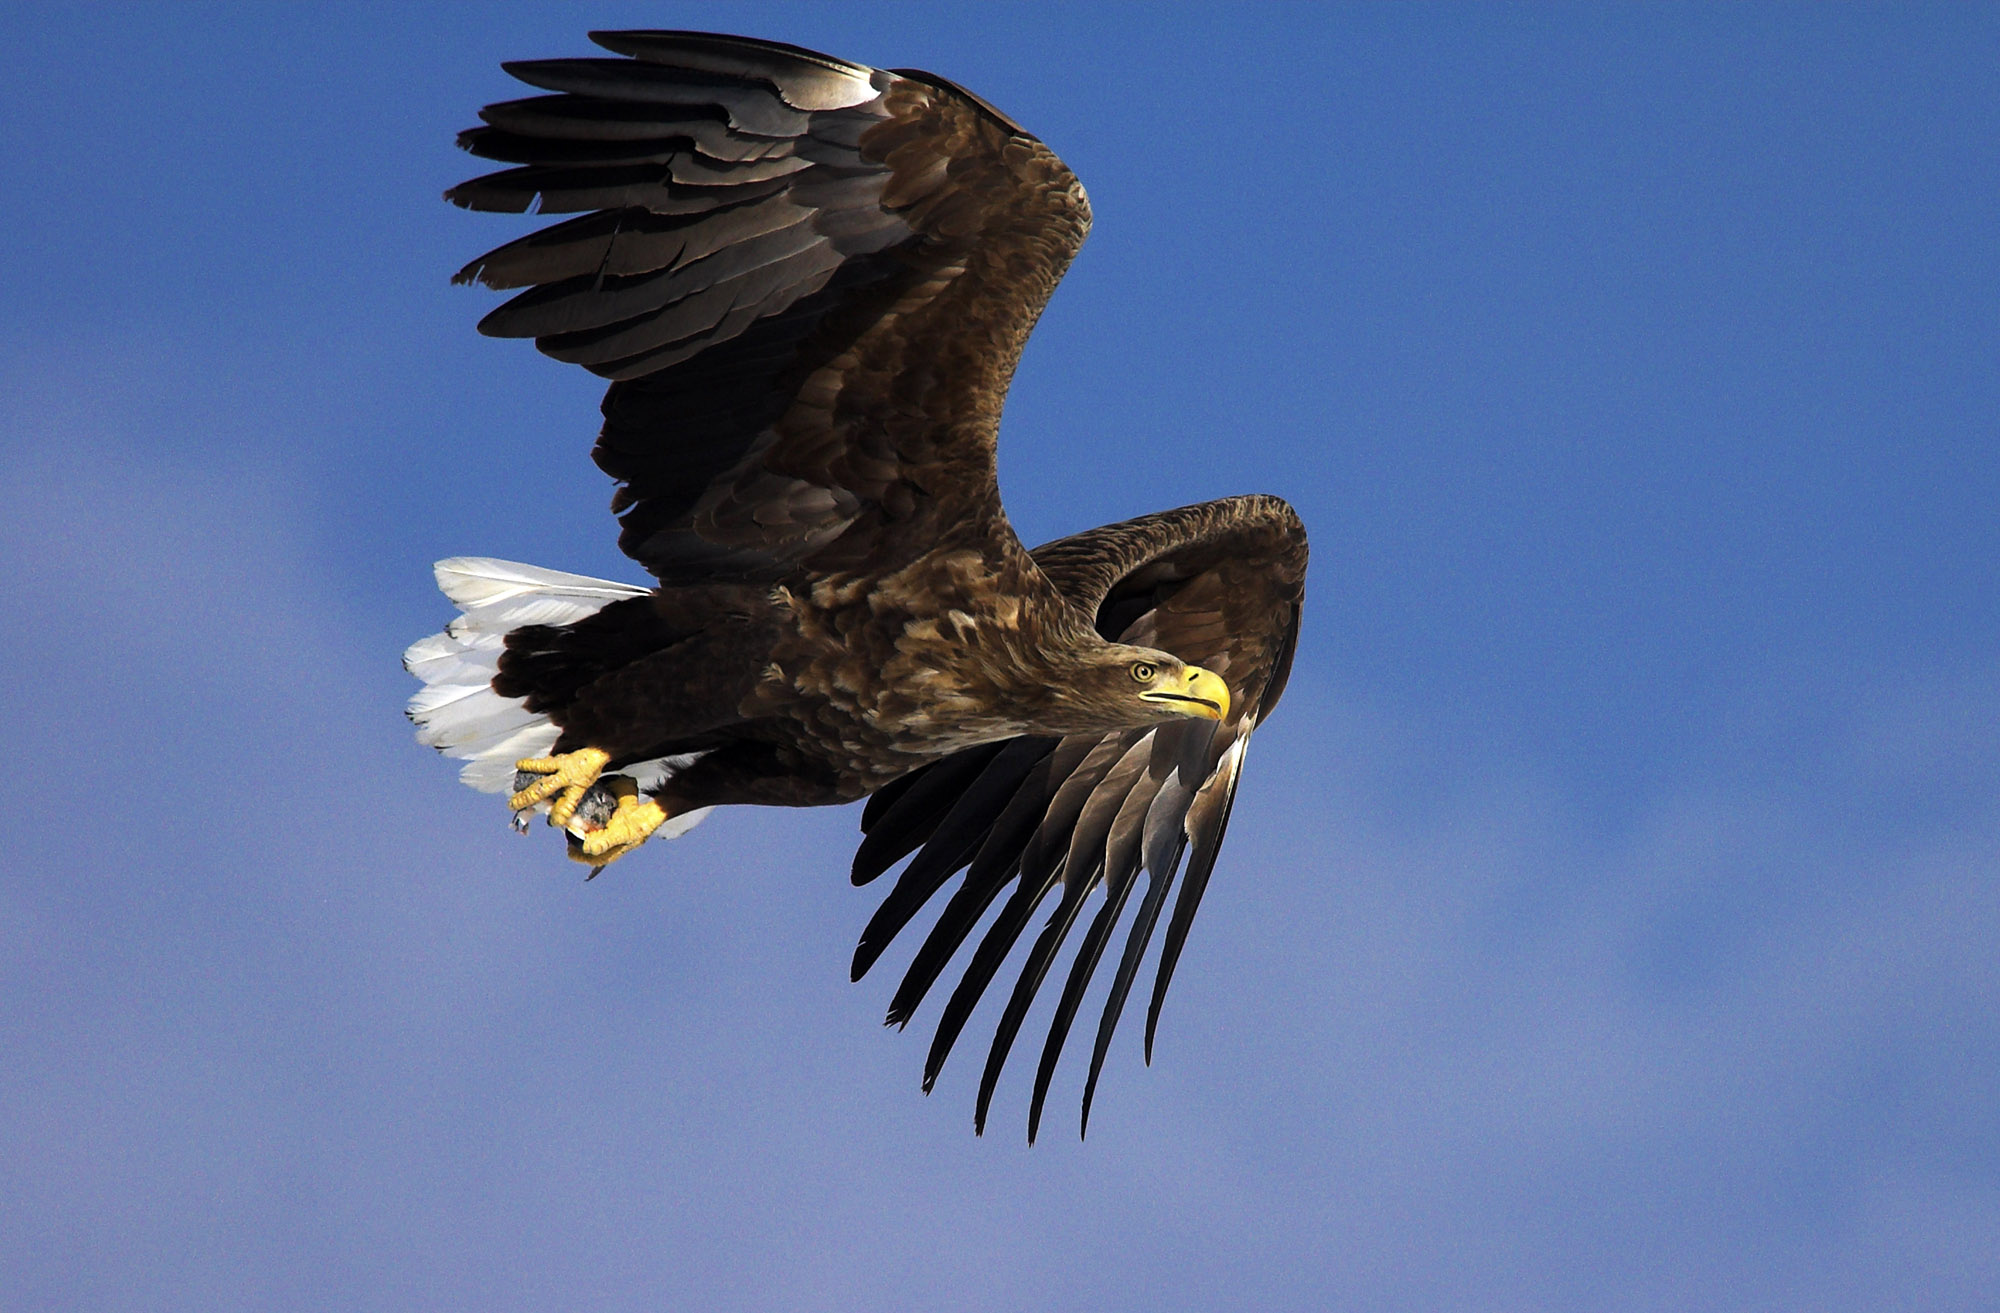 Meet the Eagle Whose GPS Tracker Captured Her Epic 1,800-Mile First Flight